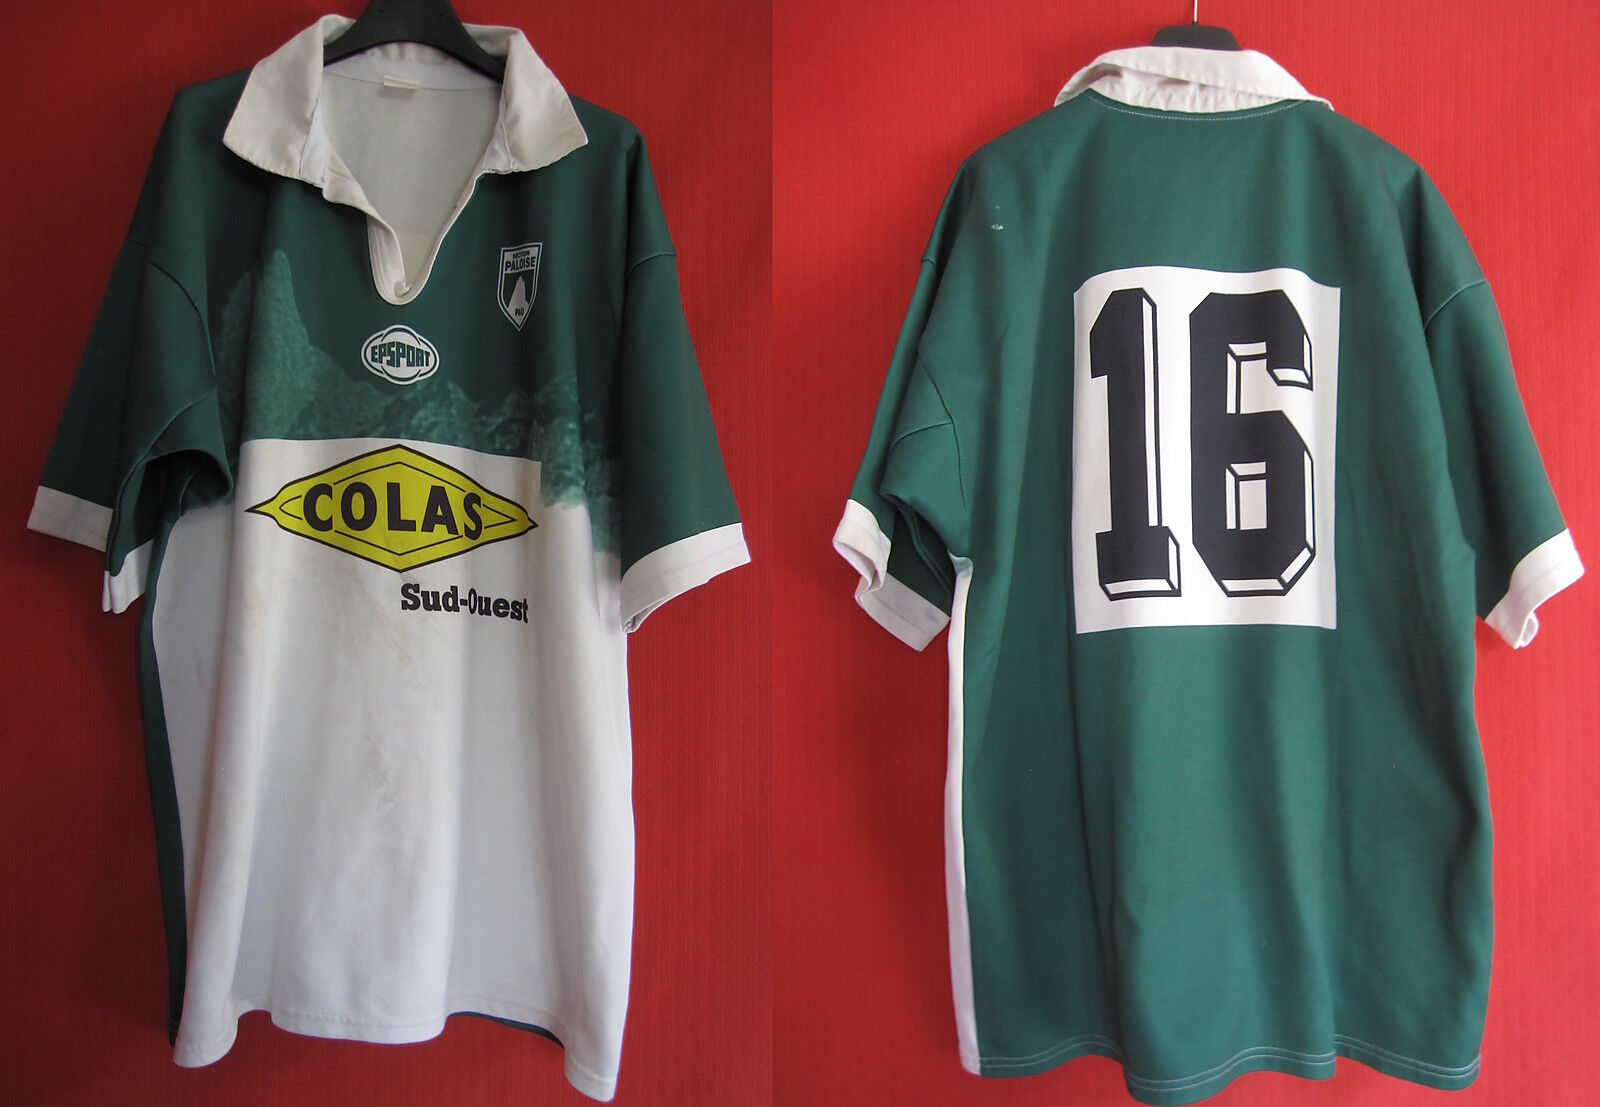 Rugby shirt section paloise sp pau epsport worn nº 16 colas sud ouest-xxl